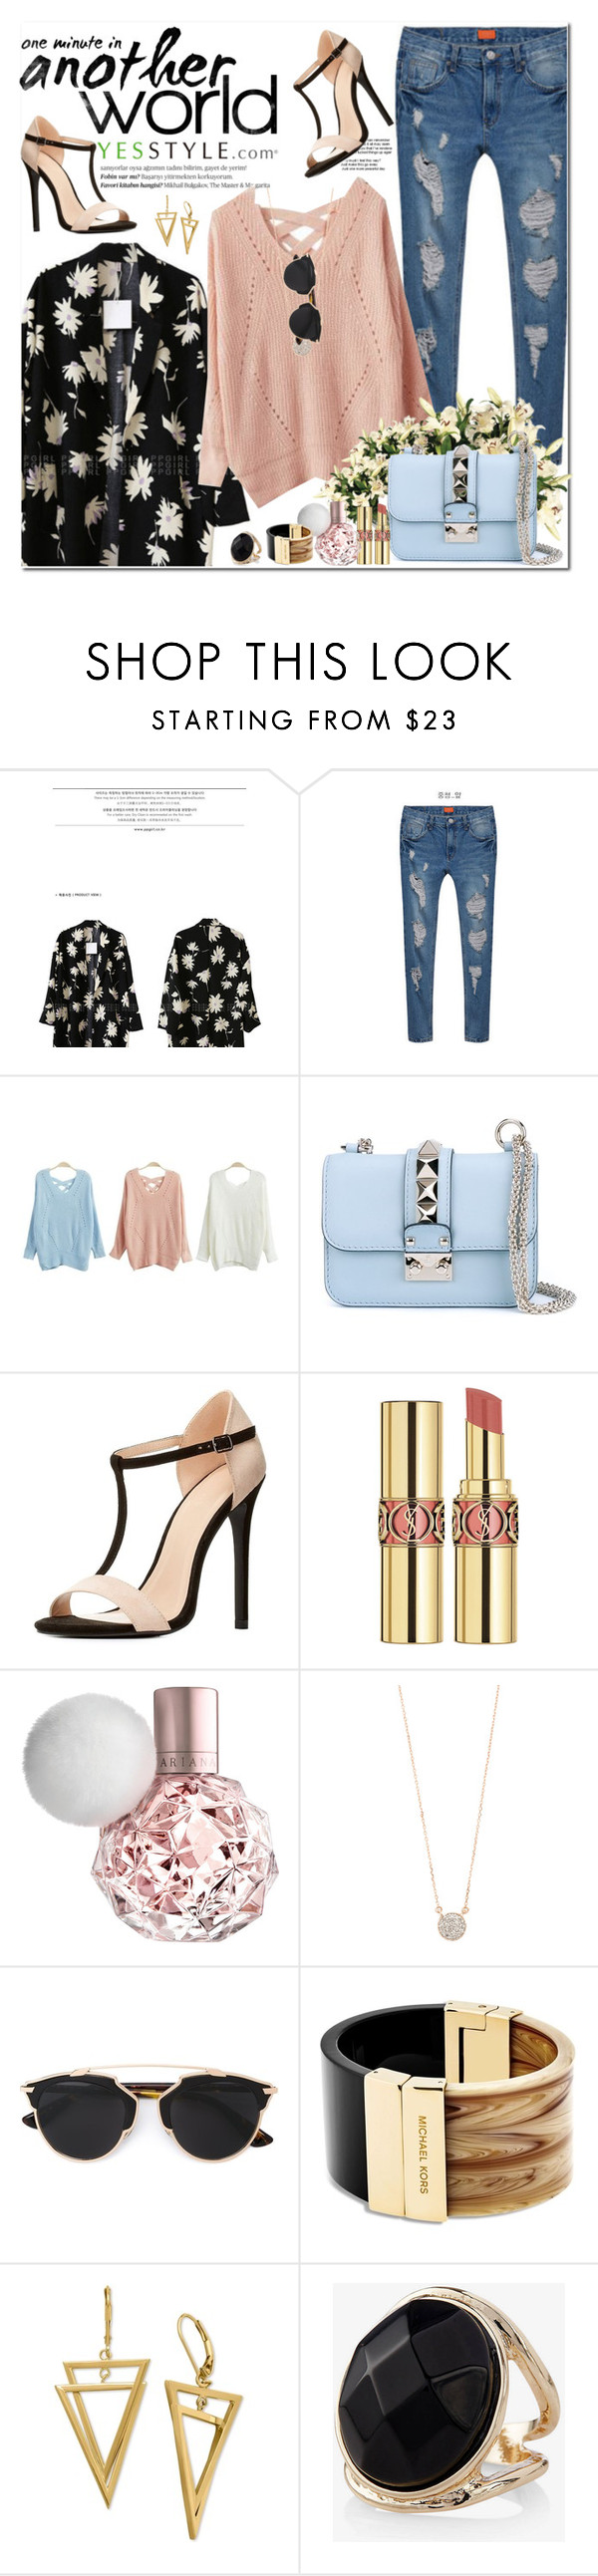 """""""YesStyle - Spring Fashion"""" by oshint ❤ liked on Polyvore featuring Balmain, Baimomo, Valentino, Charlotte Russe, Yves Saint Laurent, Adina Reyter, Christian Dior, Michael Kors, Express and women's clothing"""